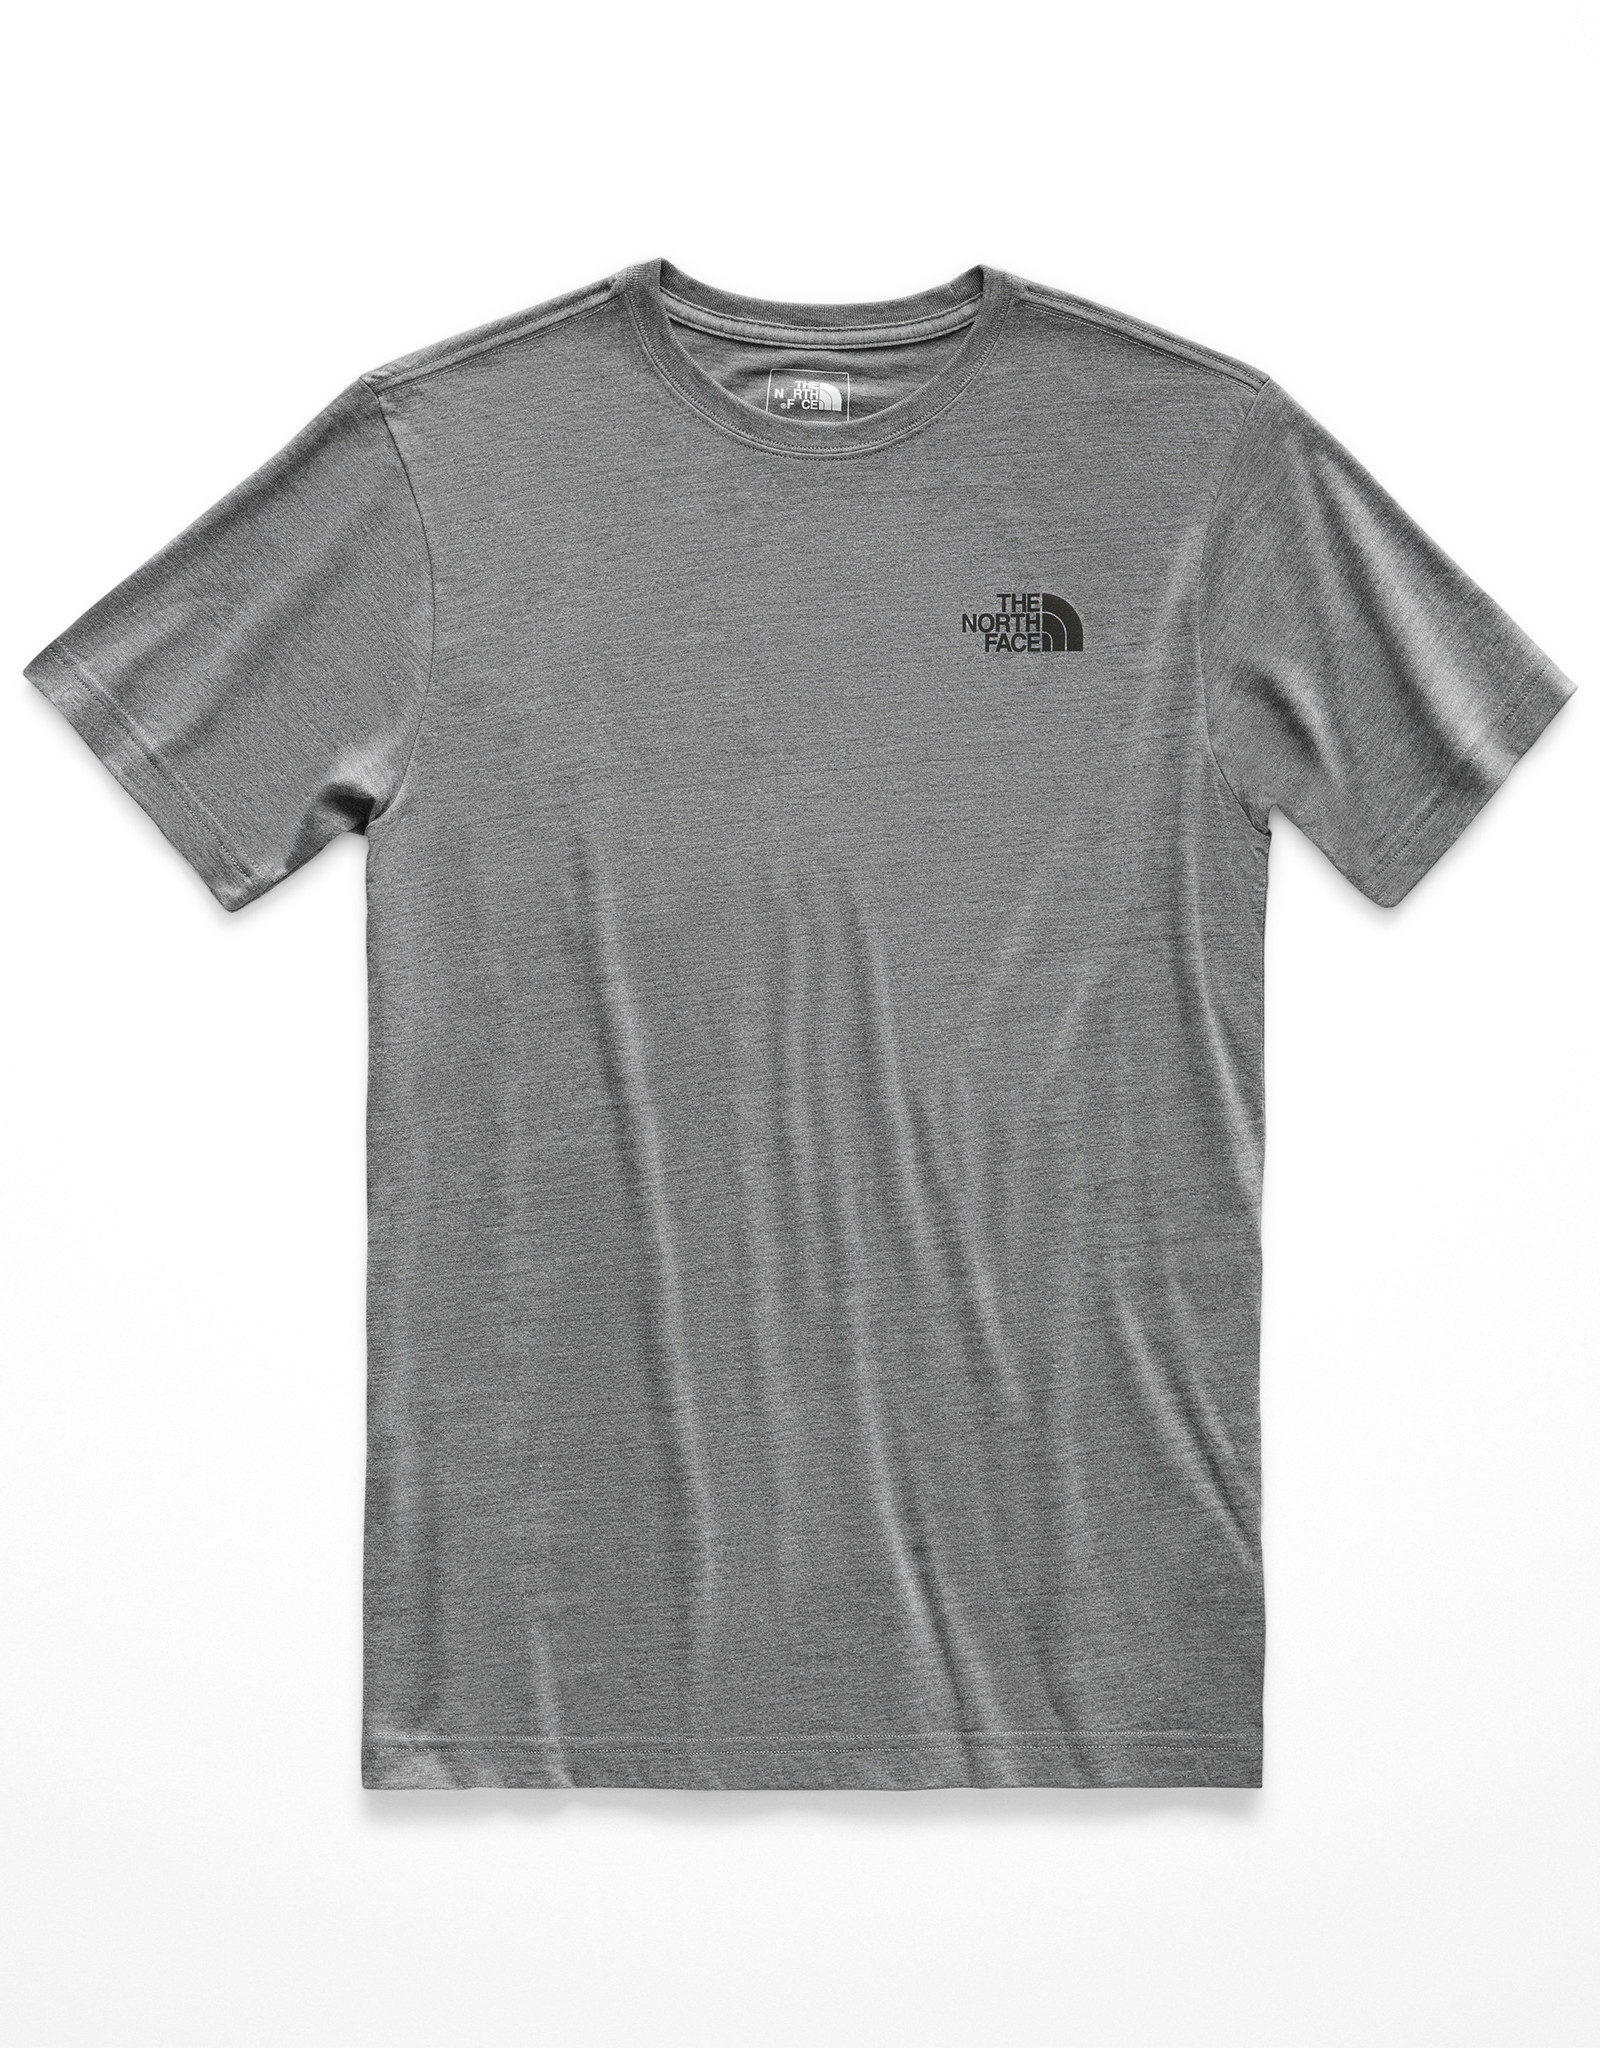 The North Face The North Face Men's S/S Rest Assured Tri-Blend Tee - S2019